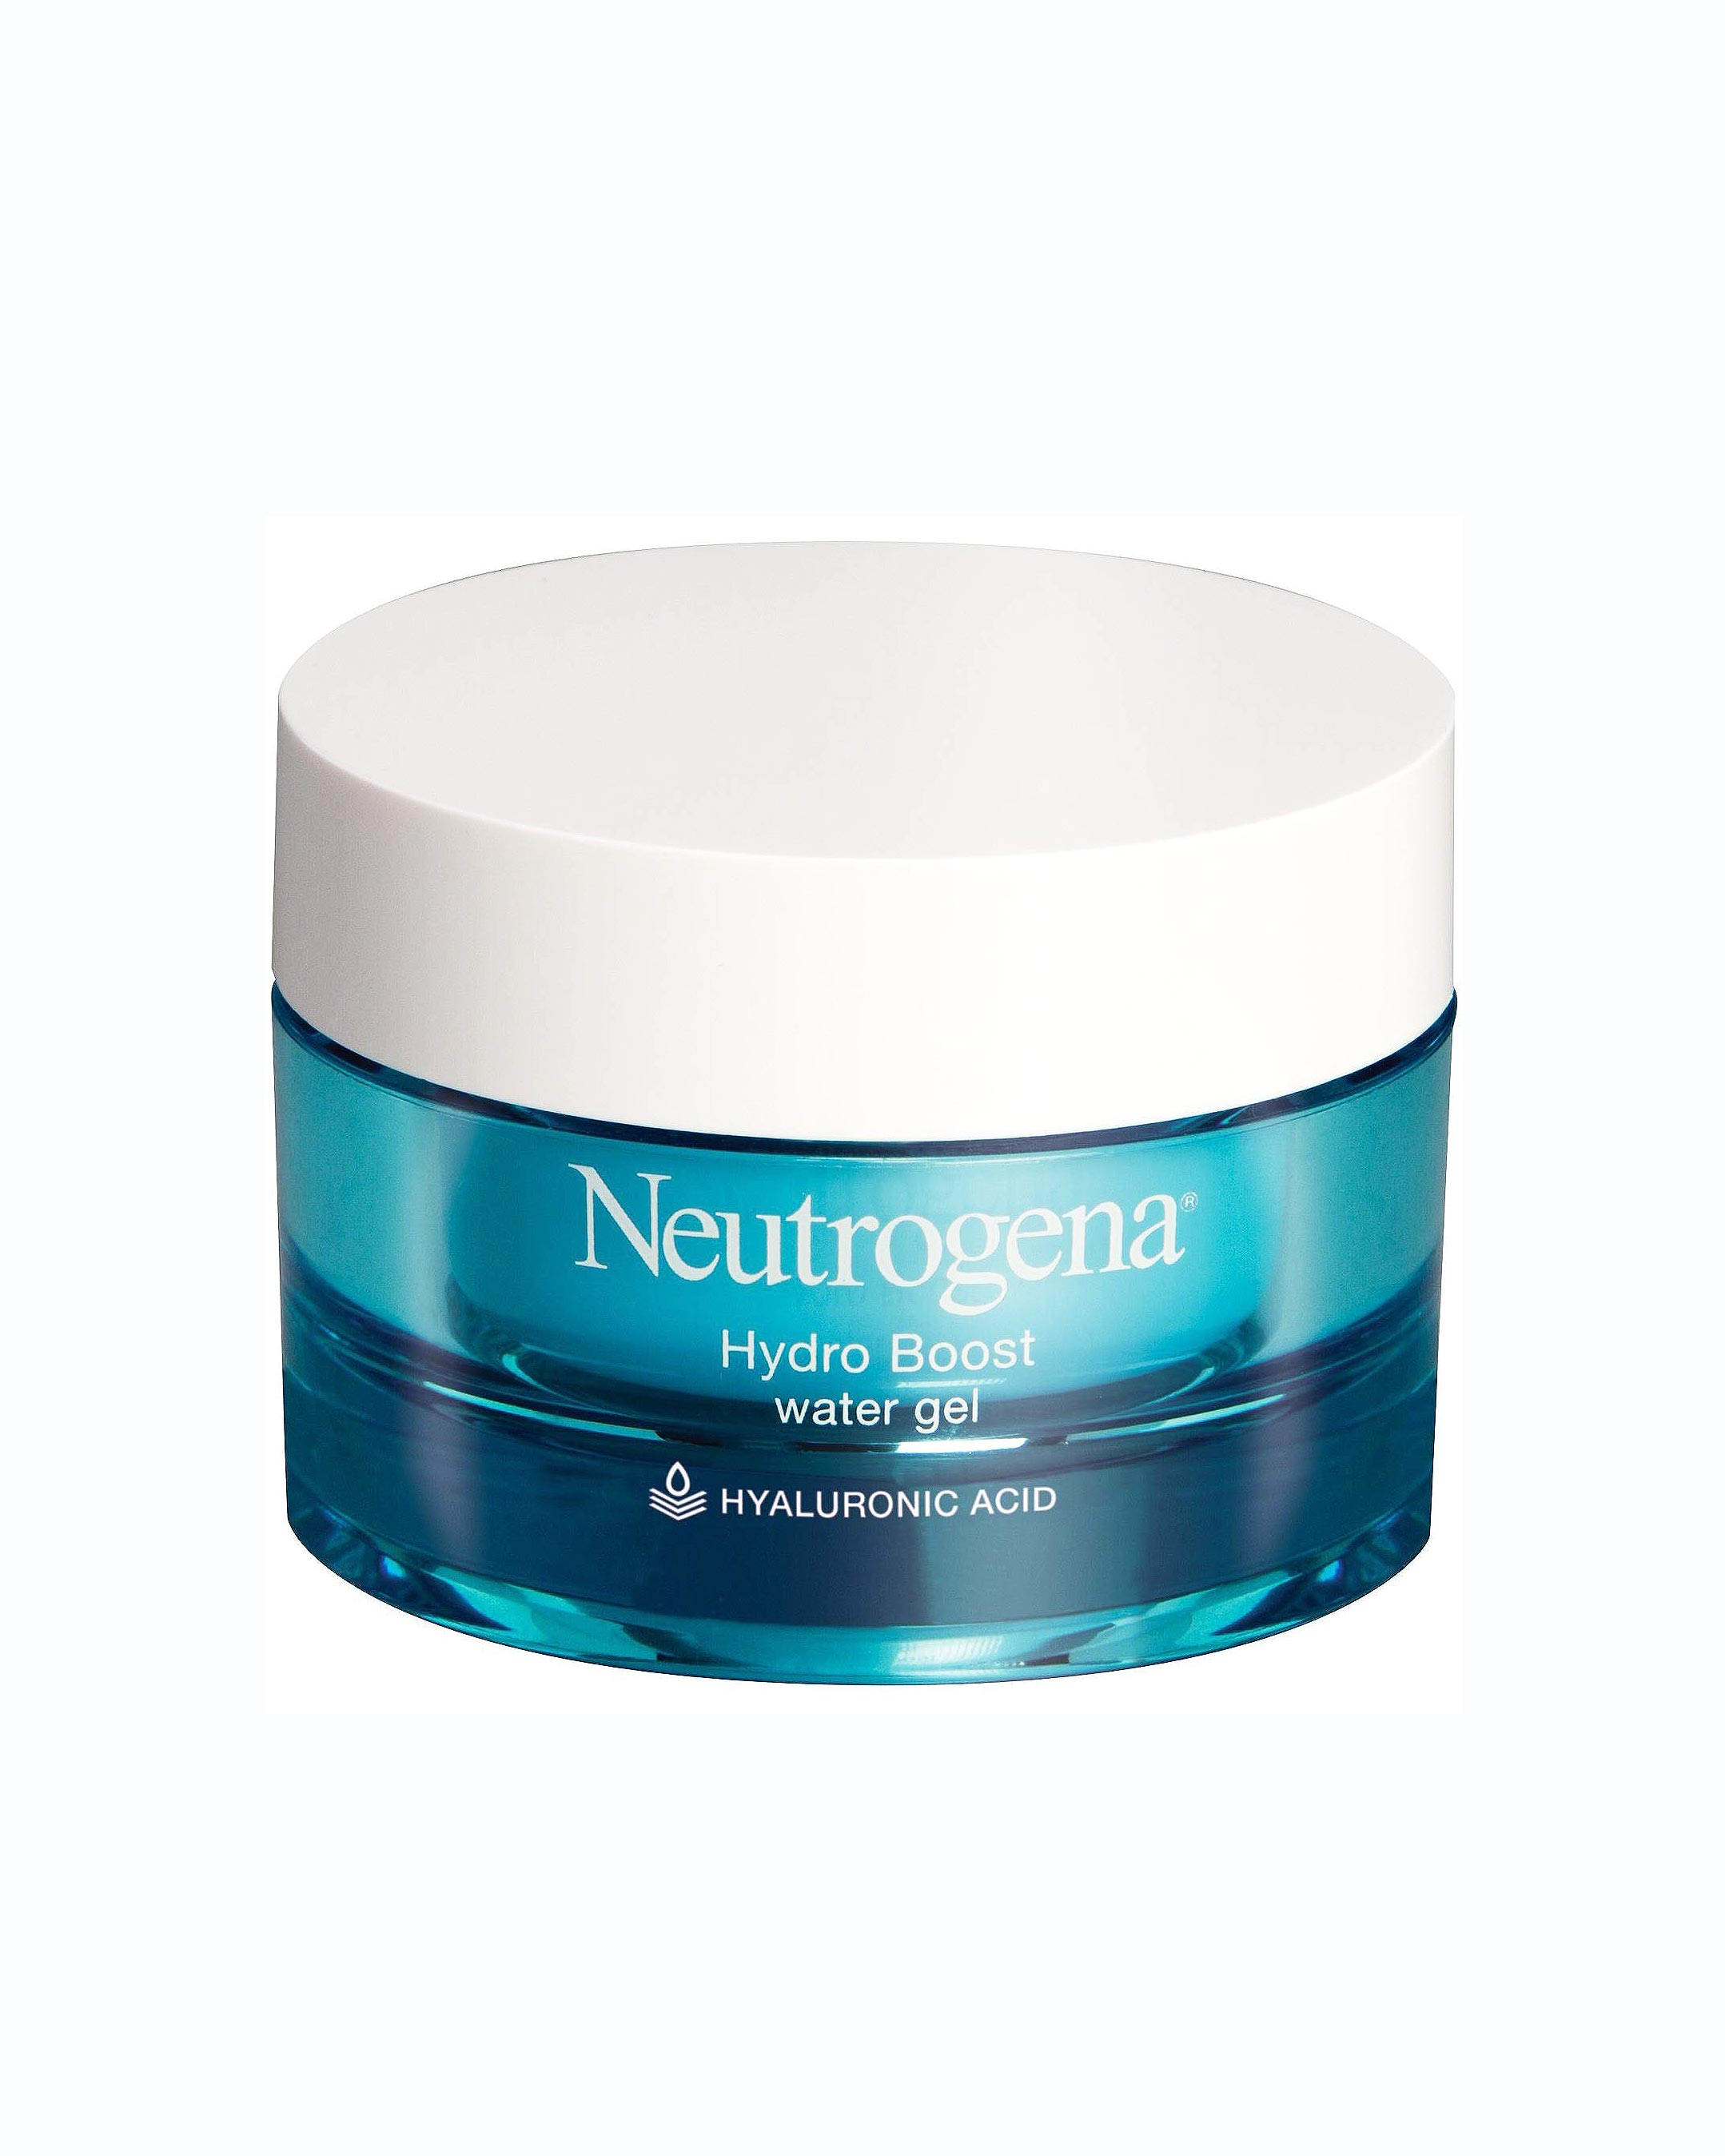 big-day-beauty-awards-neutrogena-hydro-boost-water-gel-0216.jpg